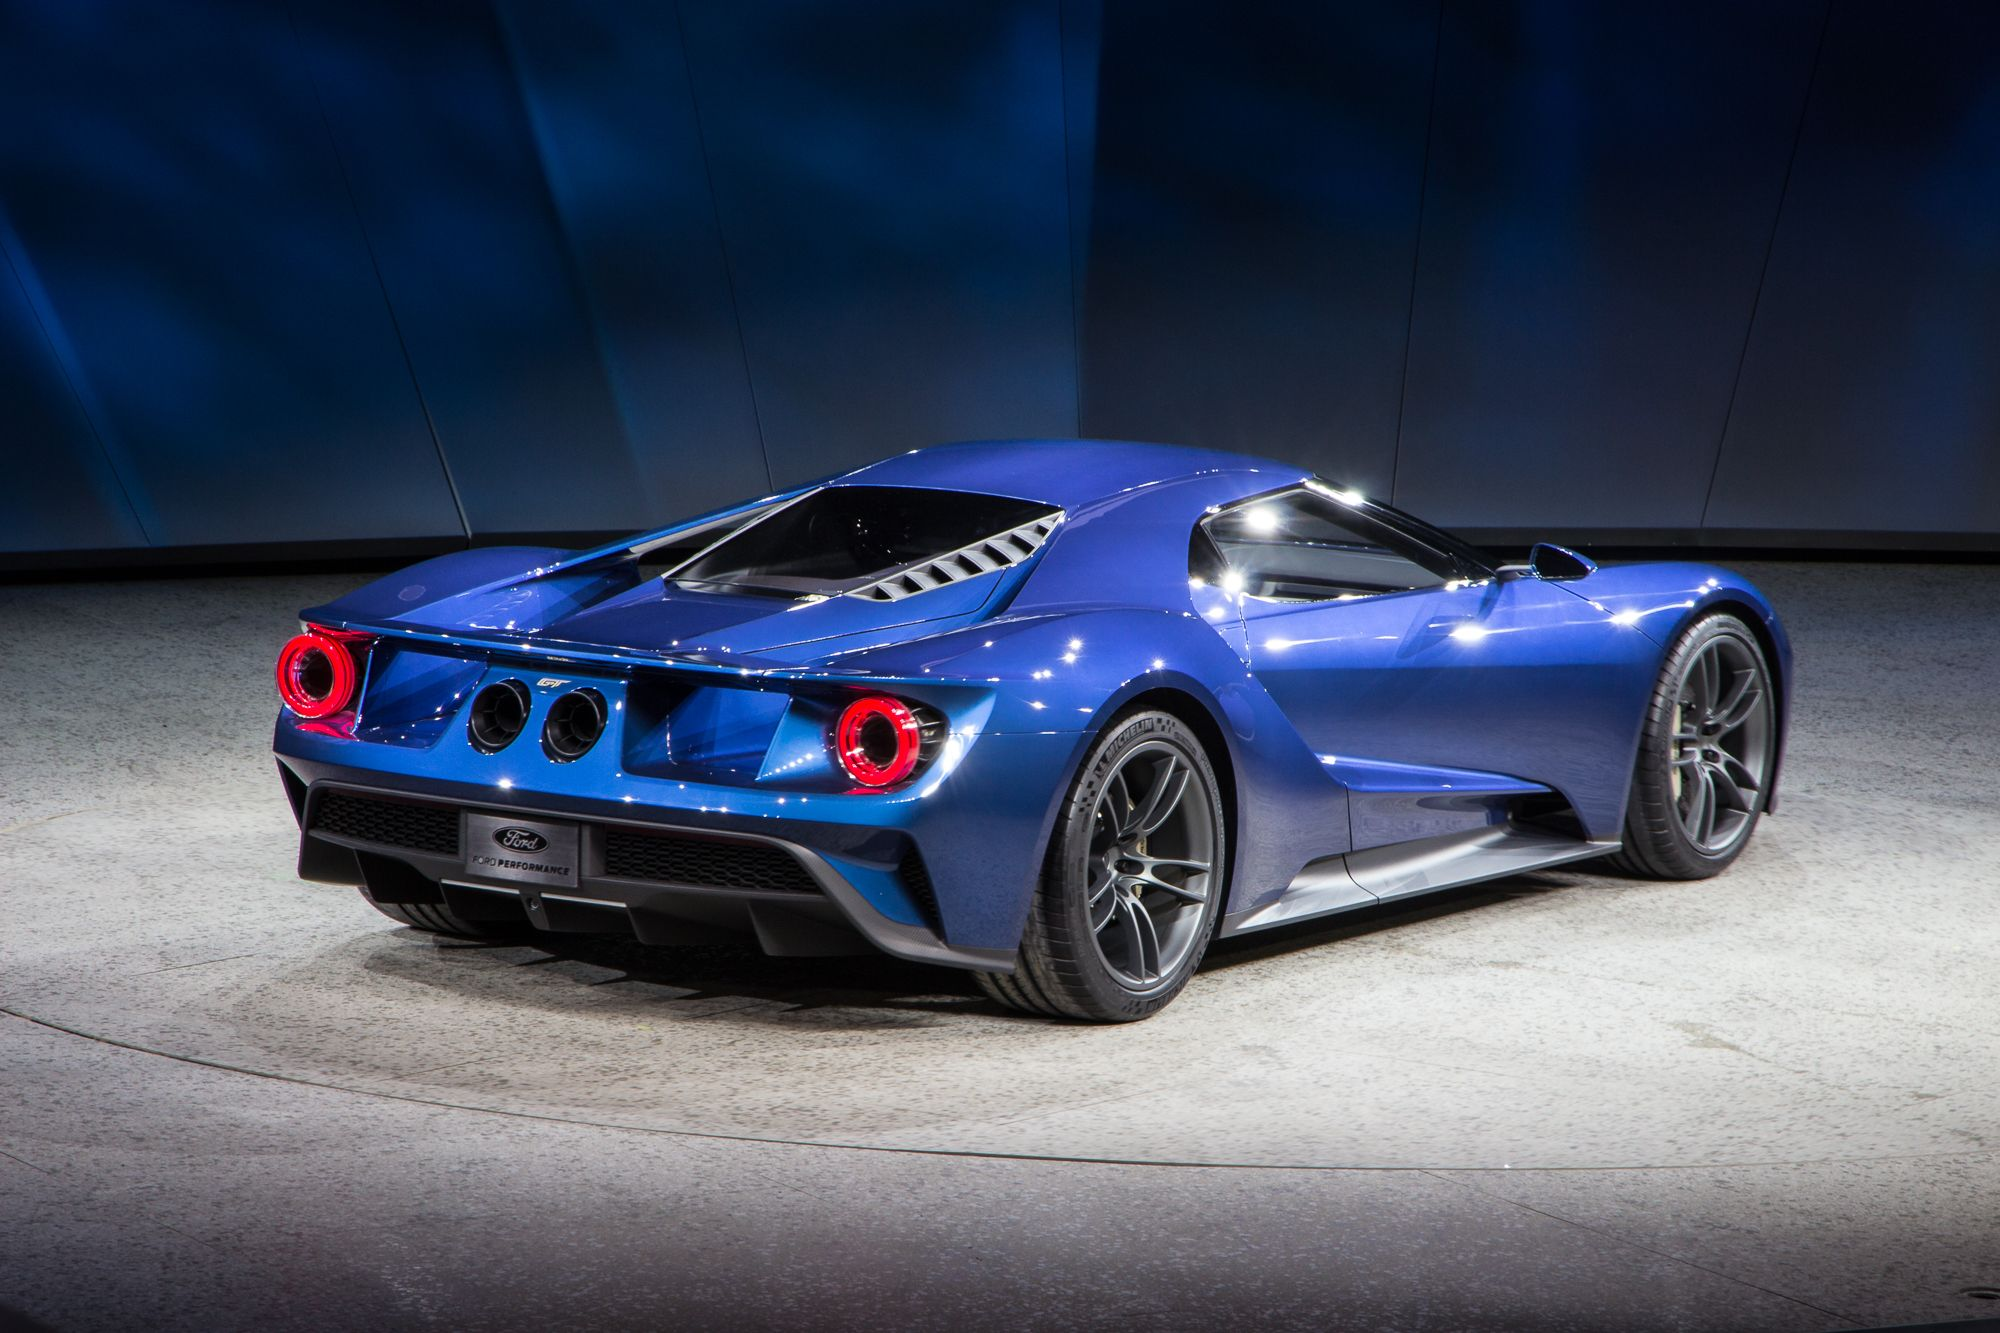 New Ford Gt Supercar Revealed At 2015 Detroit Auto Show Ford Gt